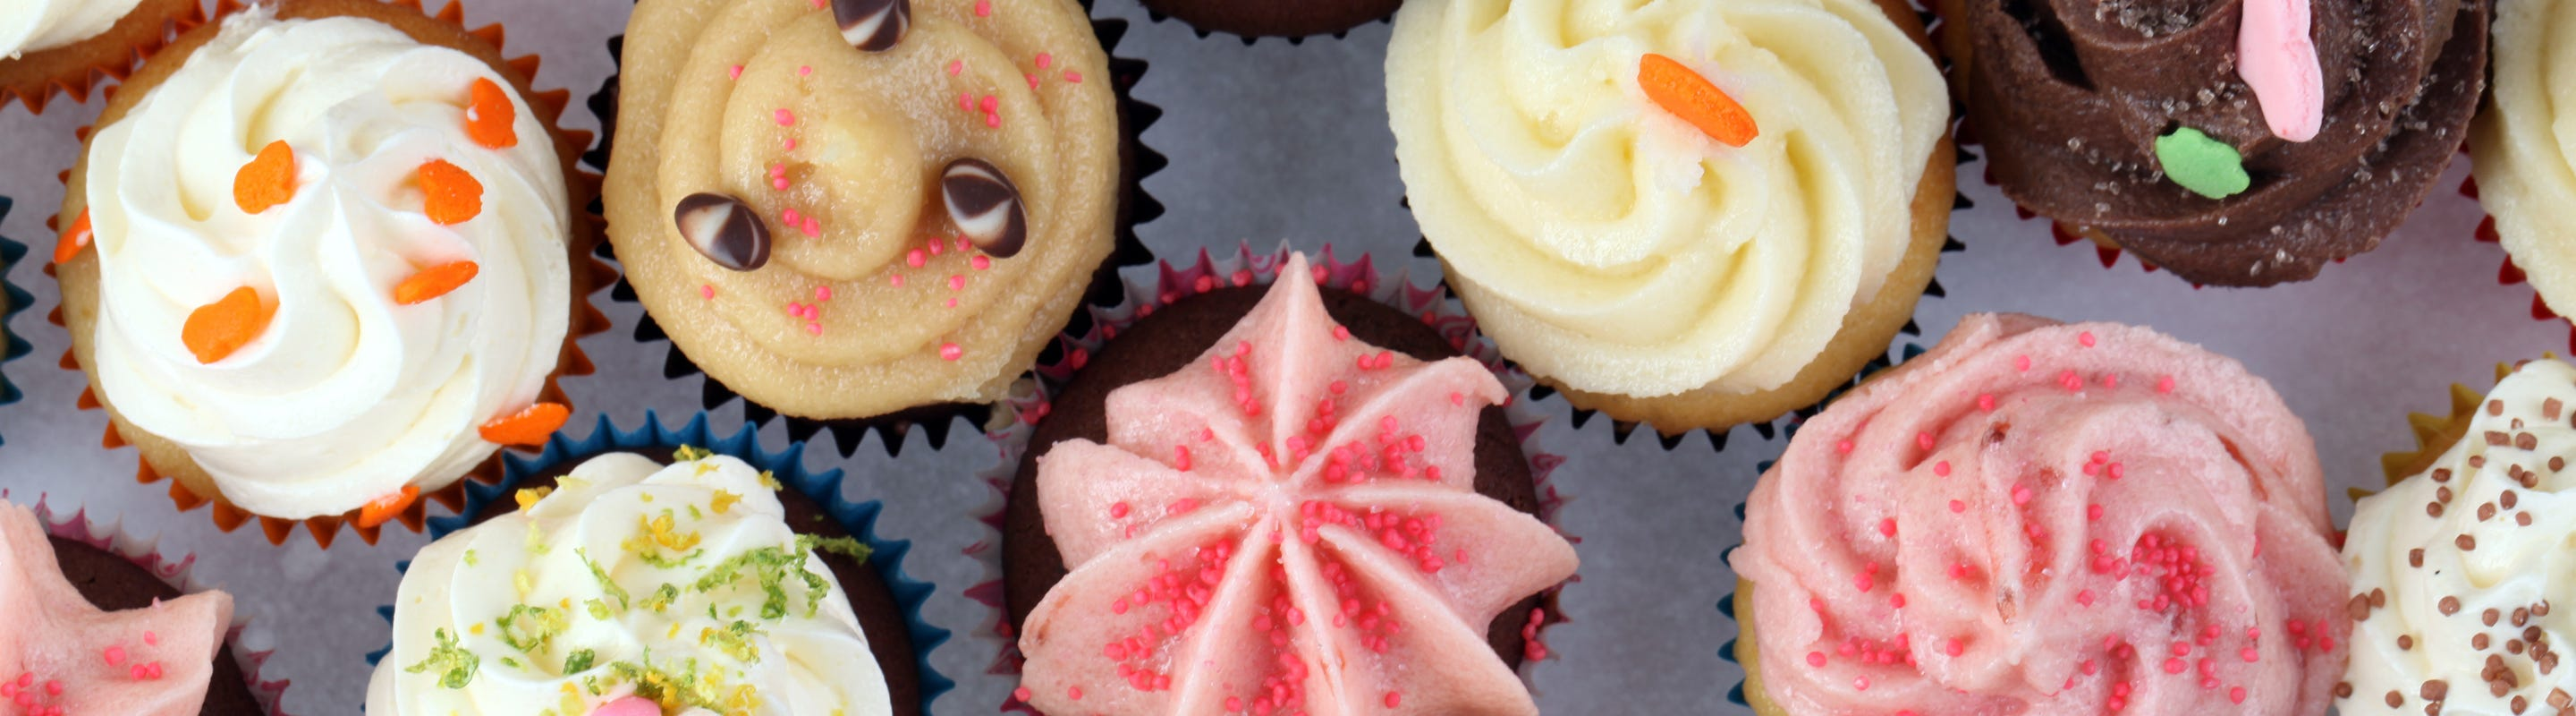 how to make hard icing decorations for cupcakes